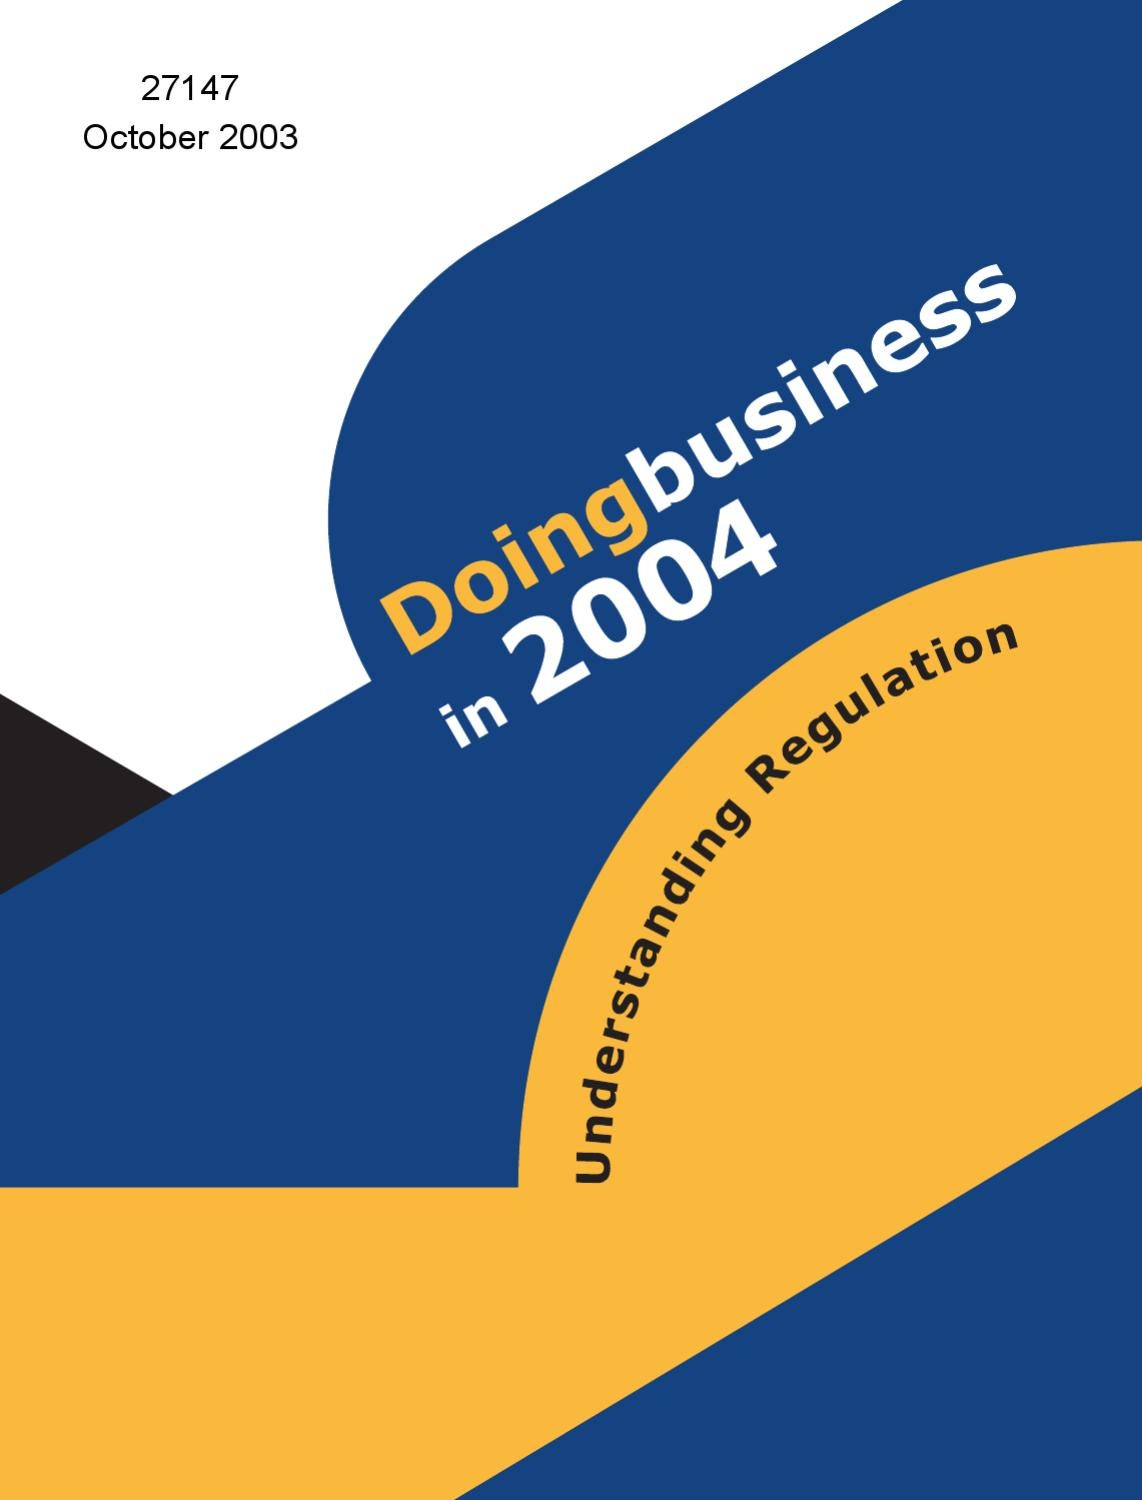 Doing Business in 2004 by World Bank Russia - issuu